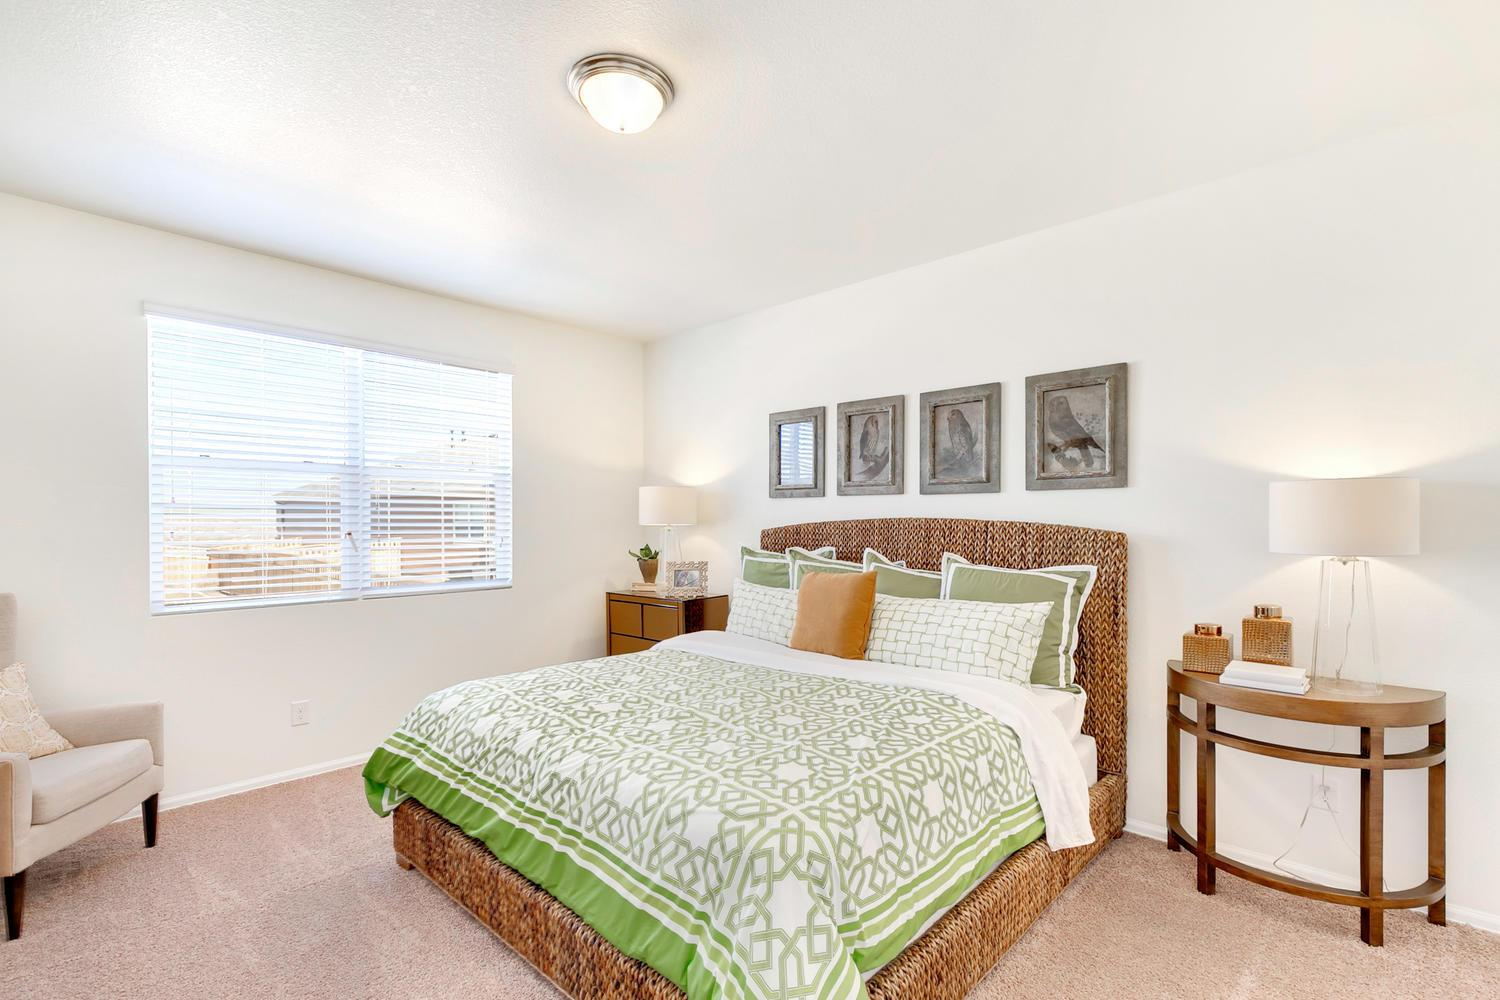 Bedroom featured in the ORCHARD By D.R. Horton in Denver, CO